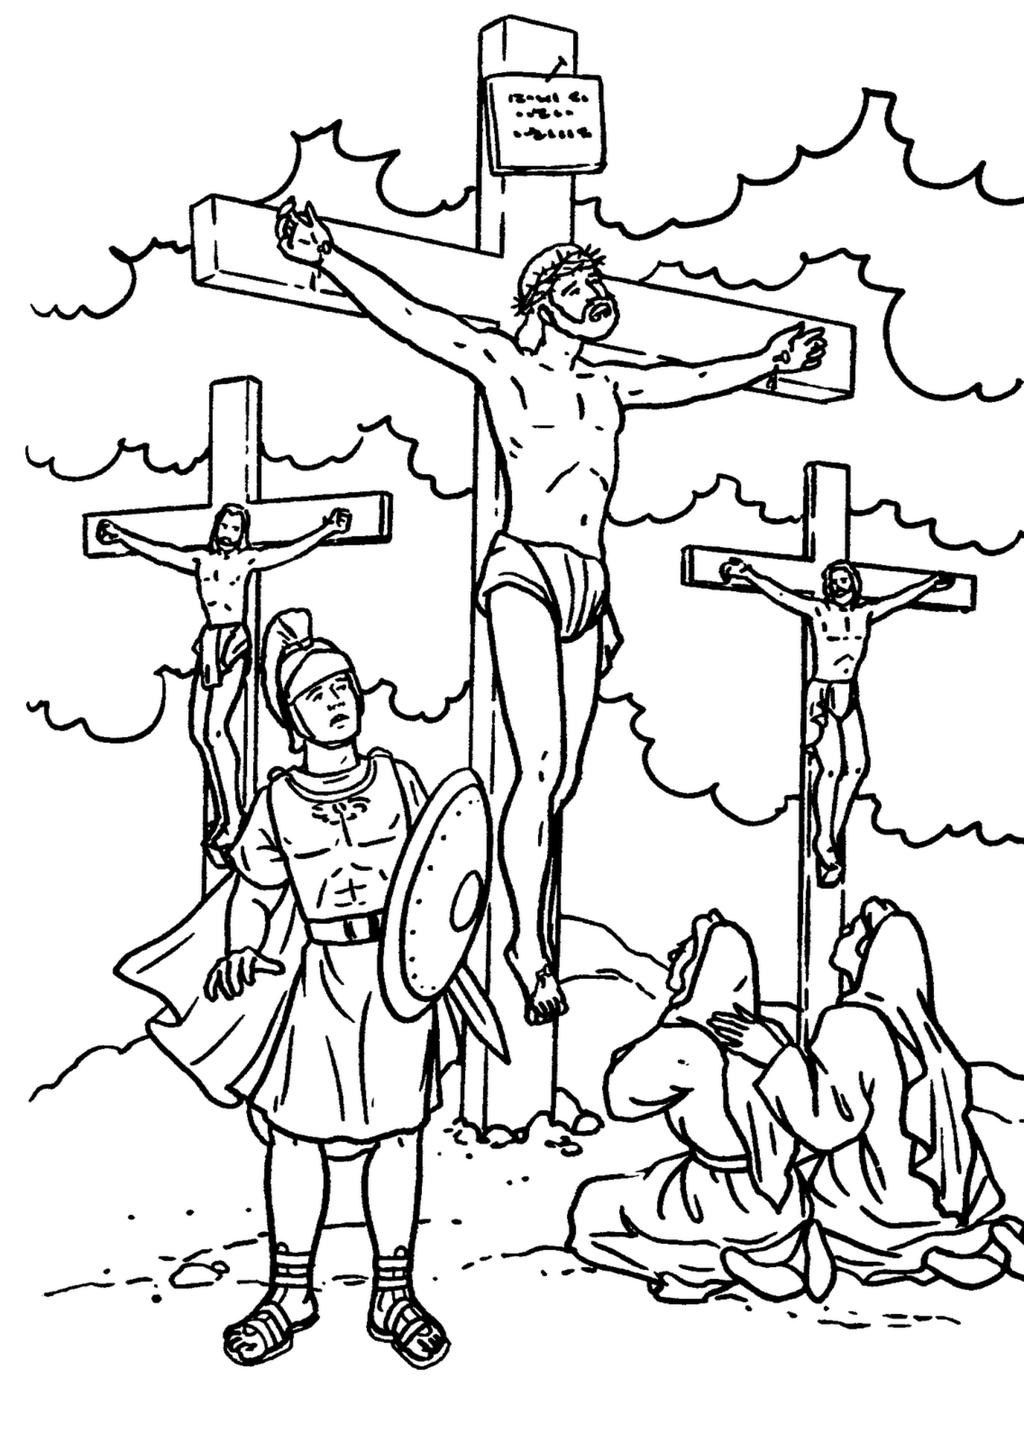 Wonderful Picture Of Jesus On The Cross Coloring Pages Davemelillo Com Jesus Coloring Pages Bible Coloring Pages Cross Coloring Page